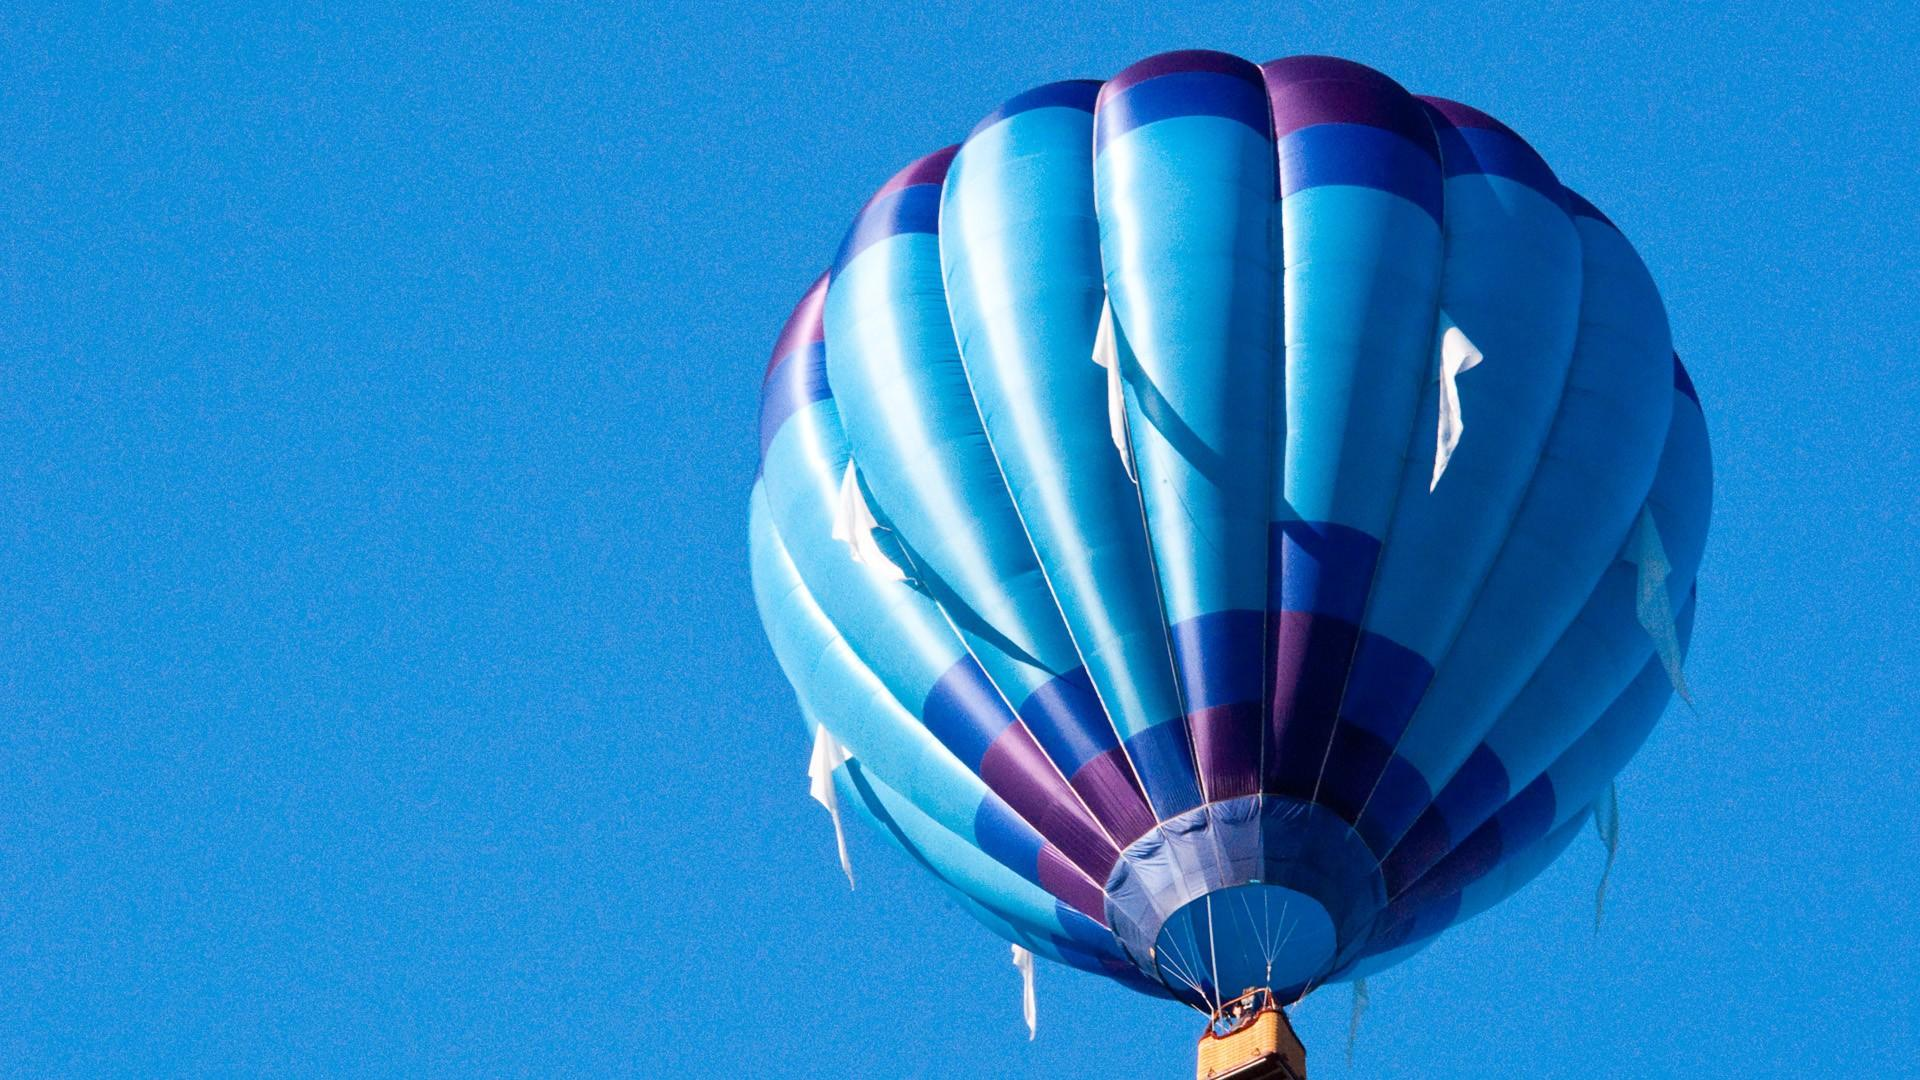 Blue hot air balloon wallpaper